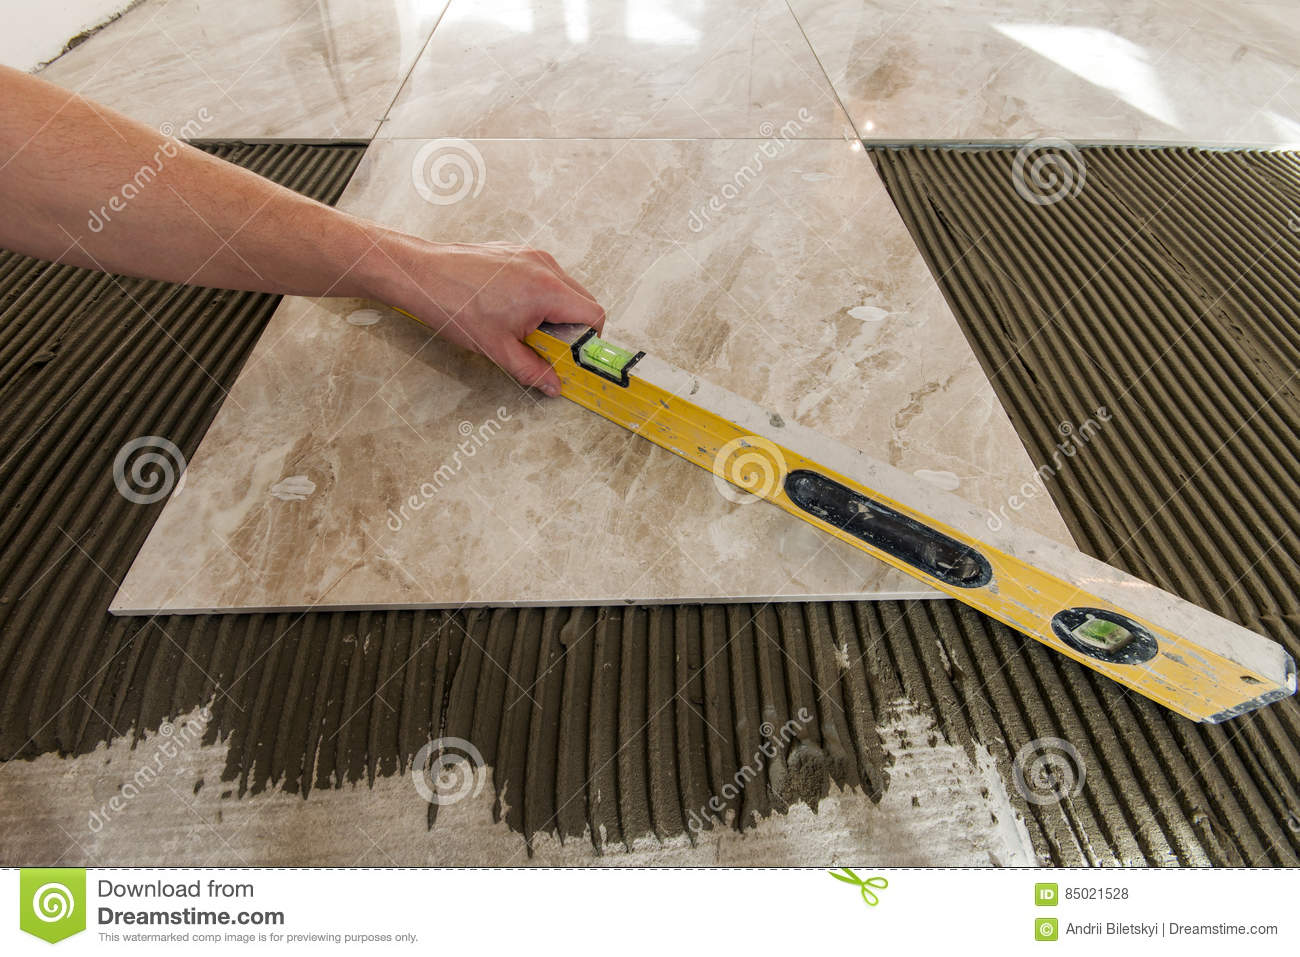 Ceramic tile installation tools images tile flooring design ideas ceramic tiles and tools for tiler floor tiles installation hom royalty free stock photo download ceramic dailygadgetfo Gallery